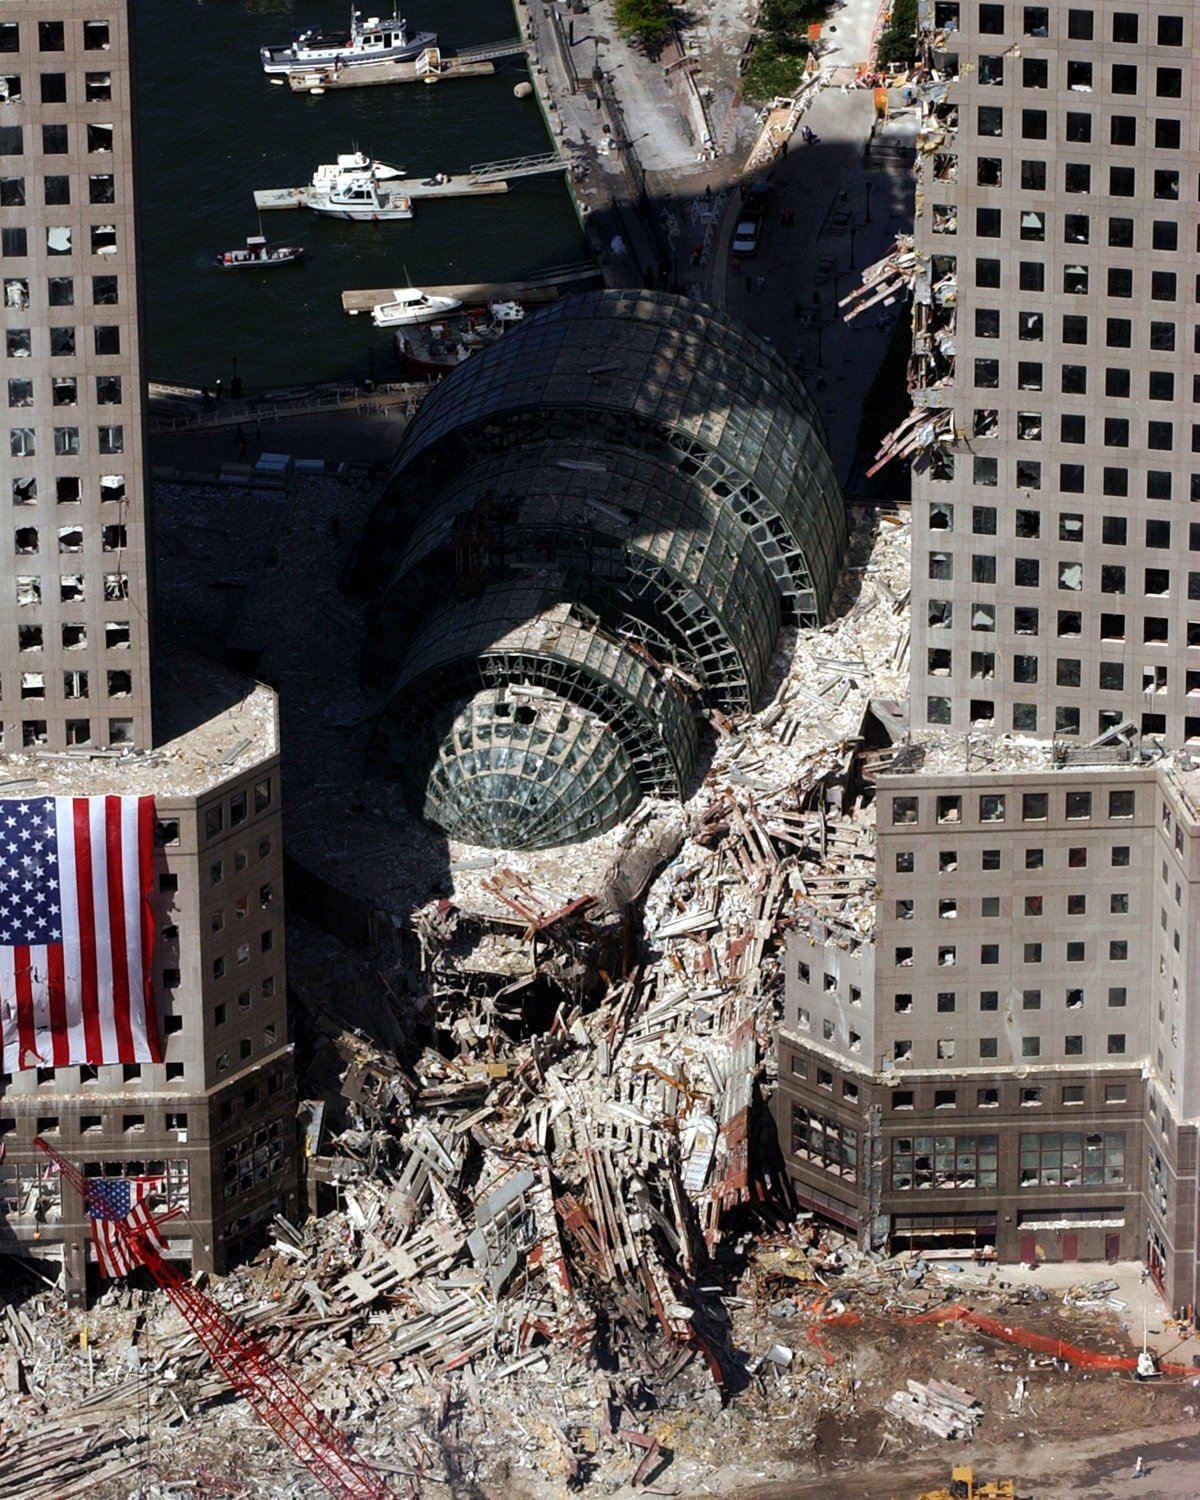 DAMAGE AT AND NEAR WORLD TRADE CENTER FROM SEPTEMBER 11 - 8X10 PHOTO (EP-730)